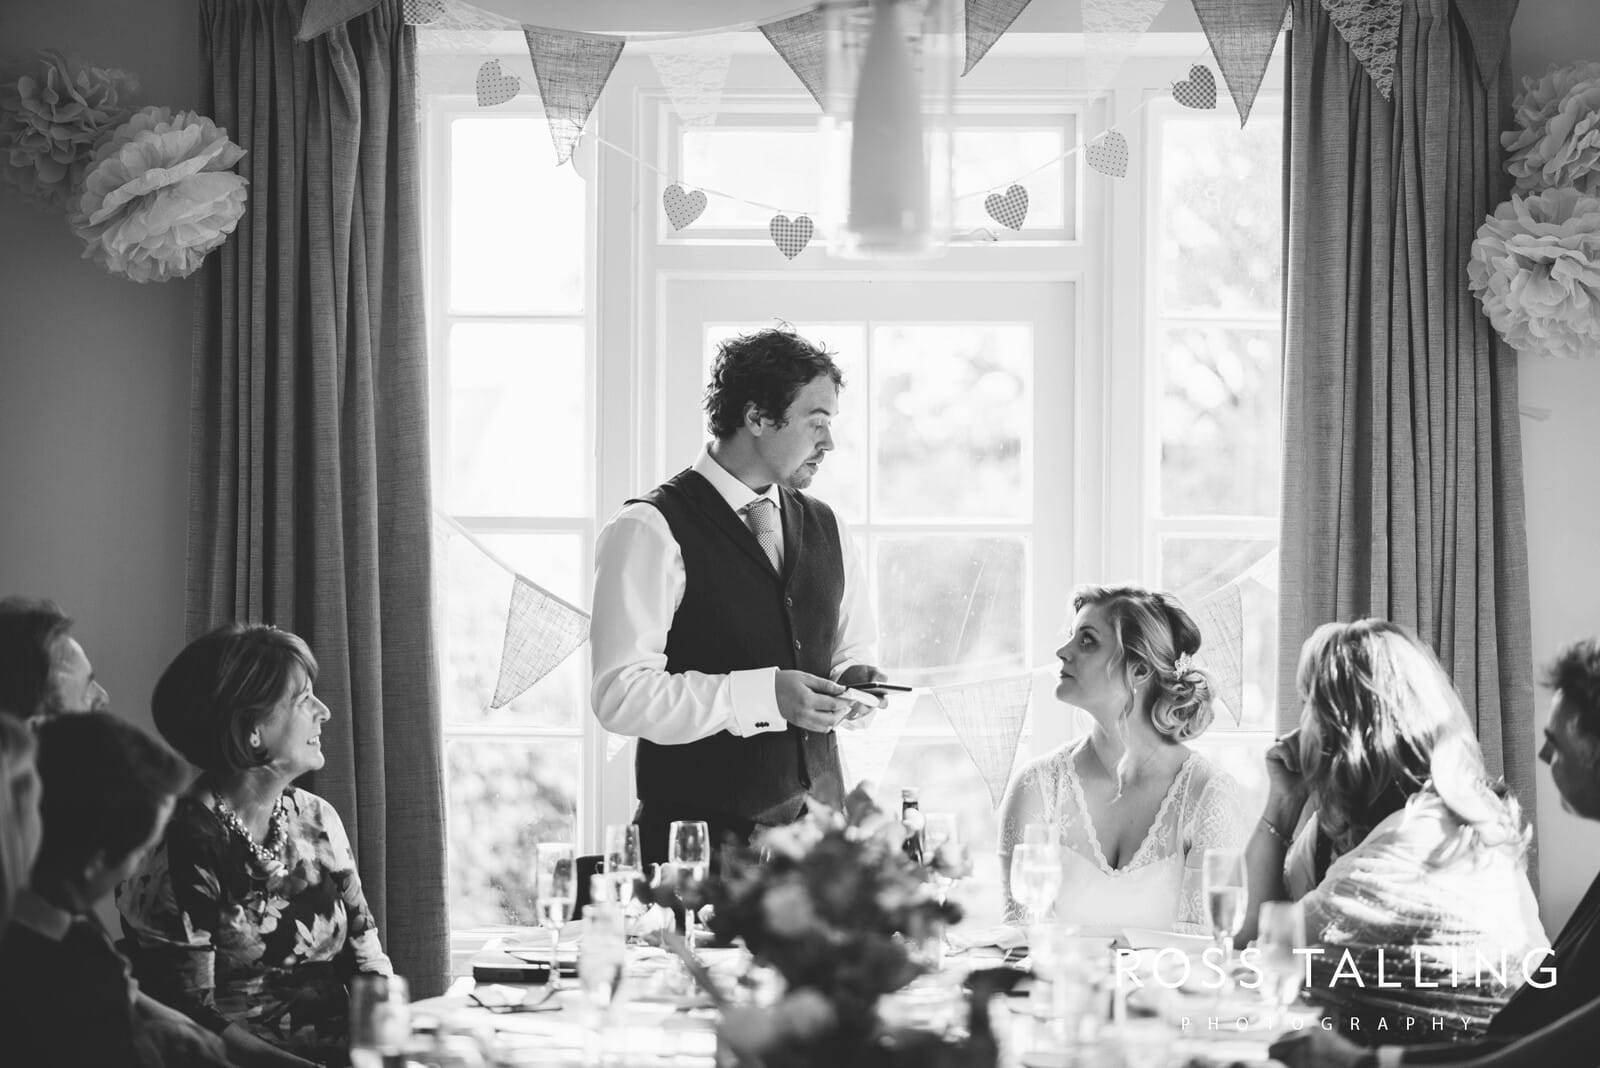 Wedding Photography at The Green Cornwall by Ross Talling_0087